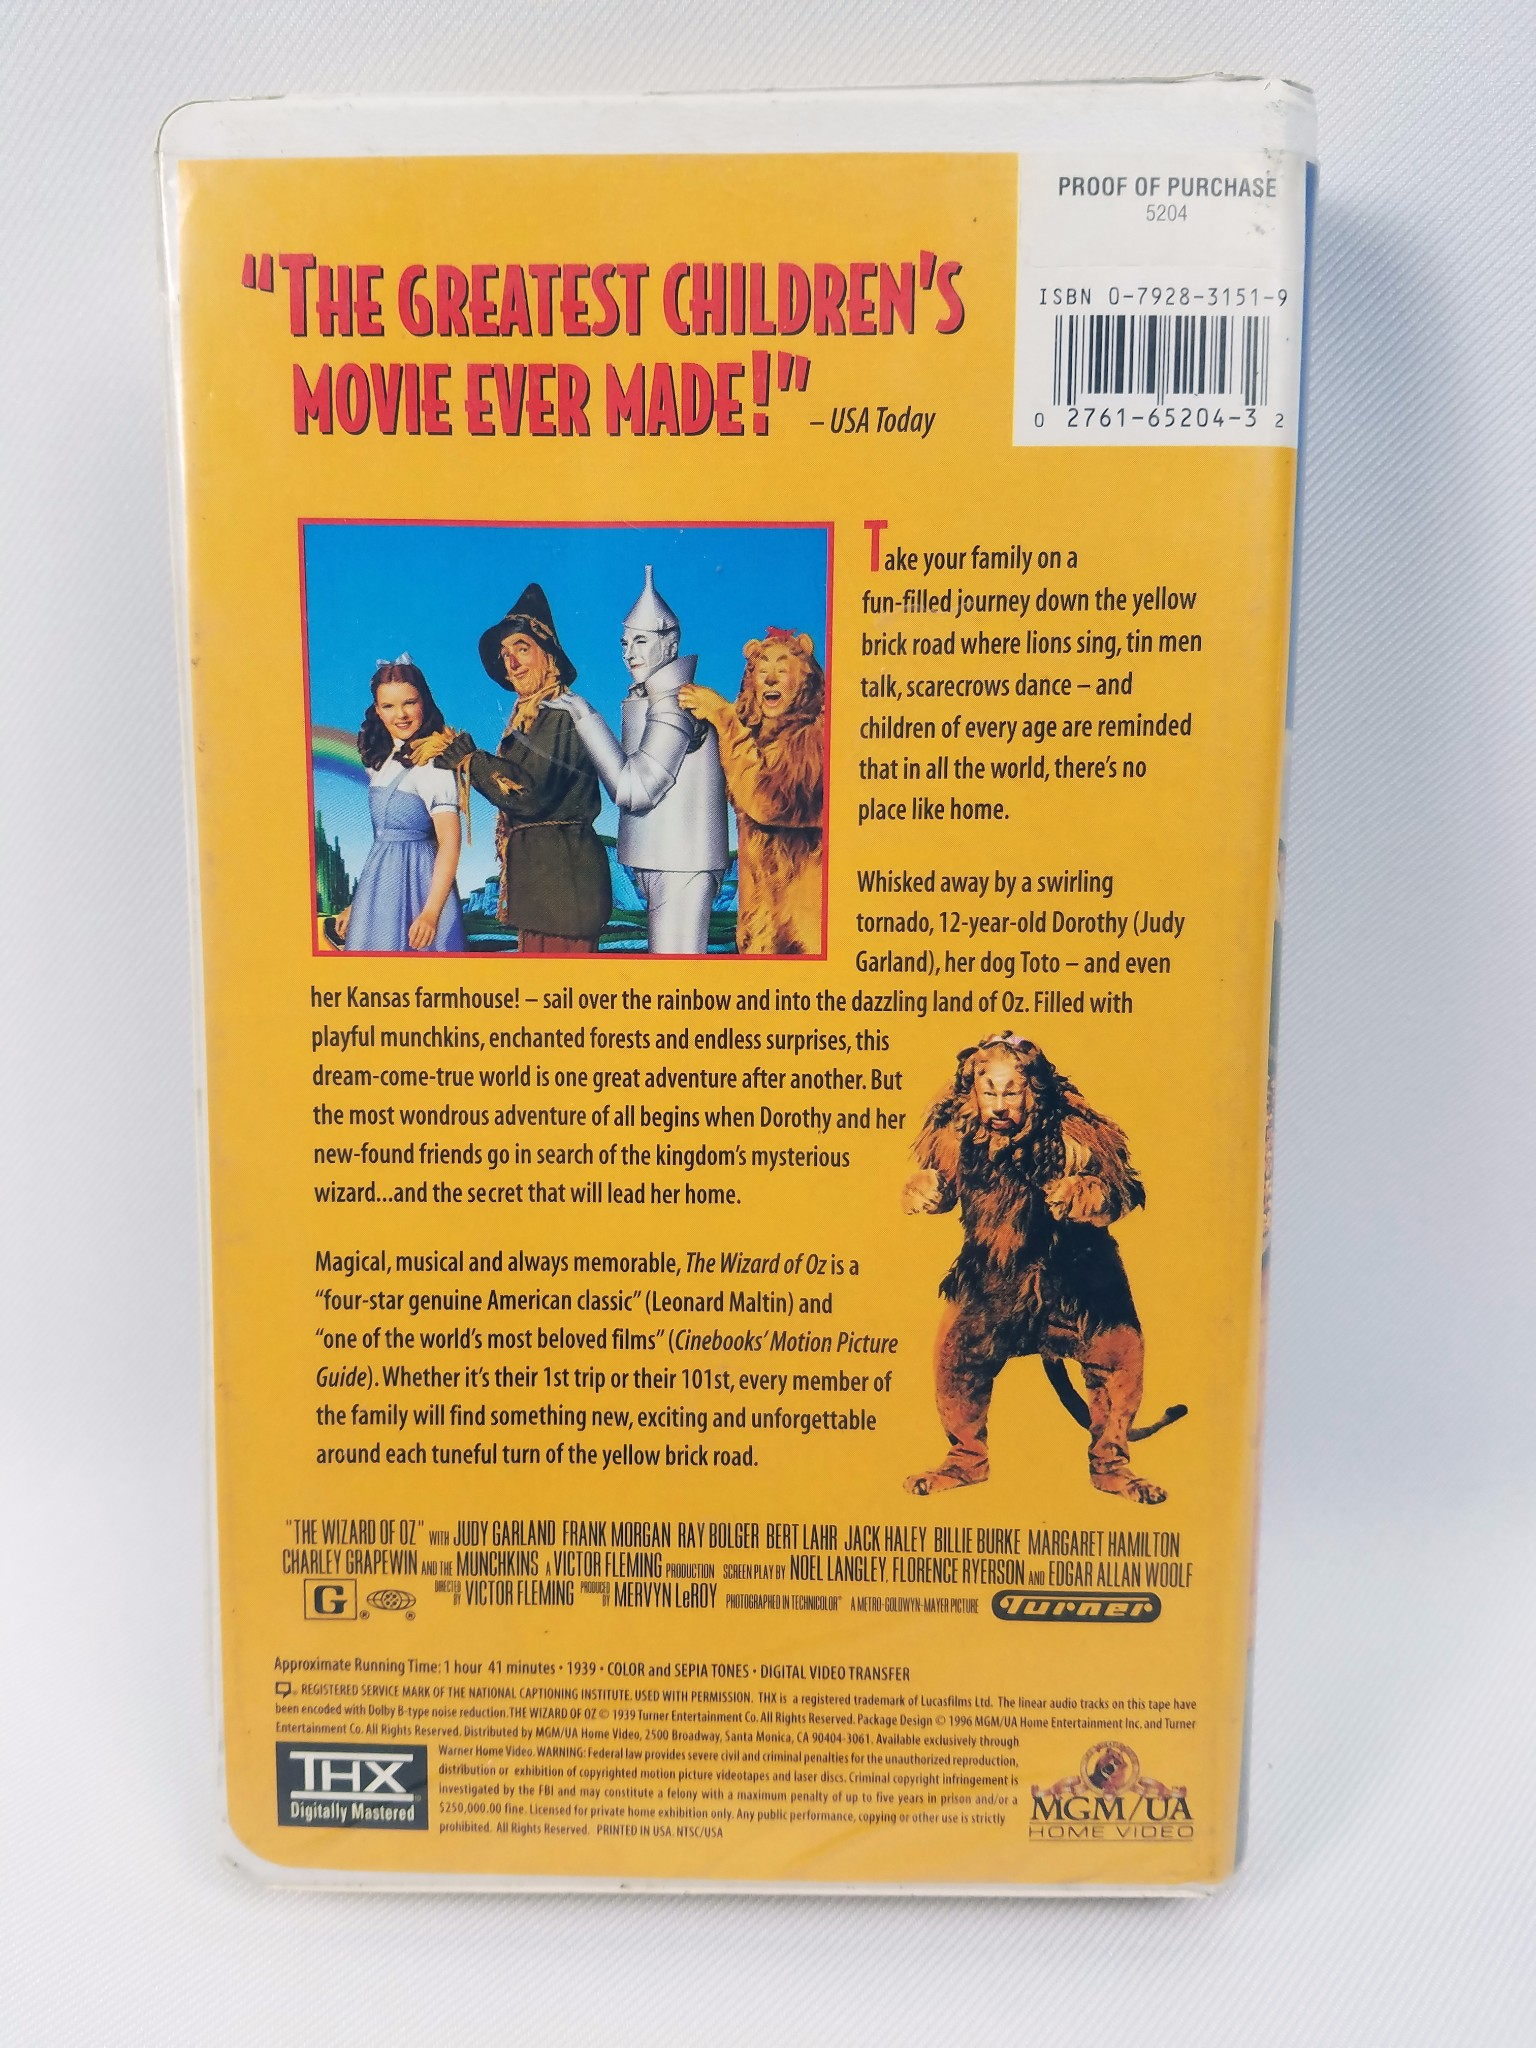 Mgm 1996 vhs youtube D...A Christmas Story Vhs 1996